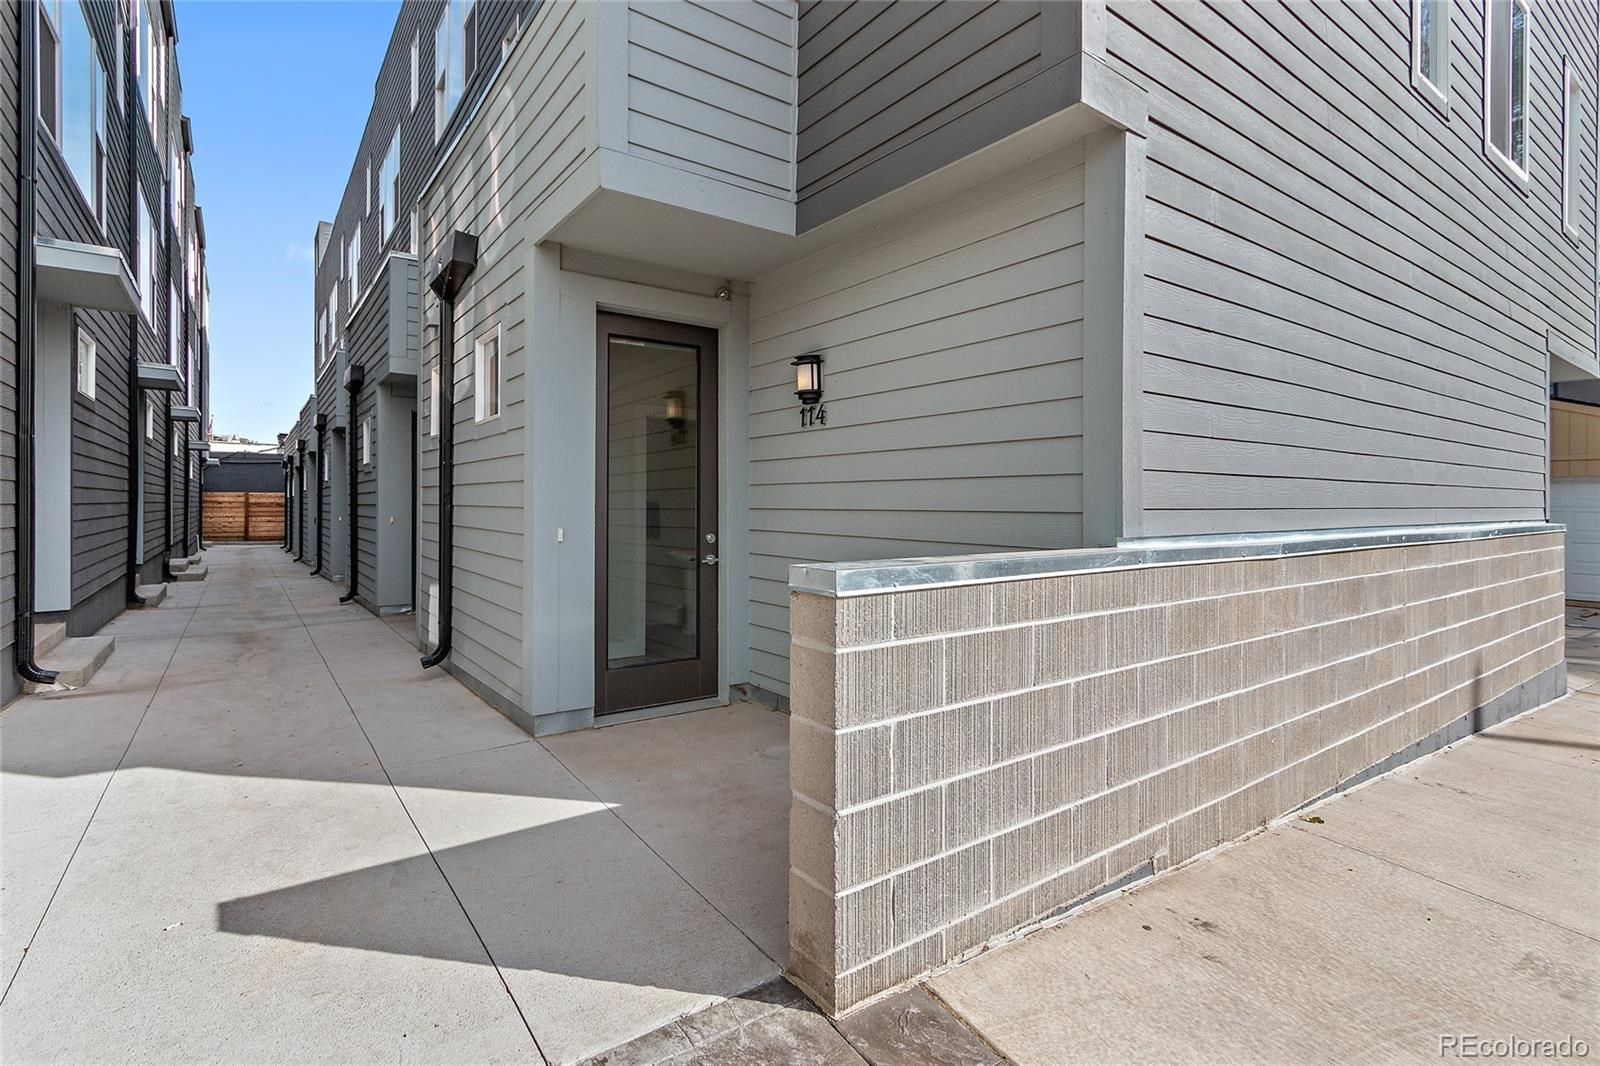 MLS# 7807225 - 4 - 1480 Wolff Street #114, Denver, CO 80204